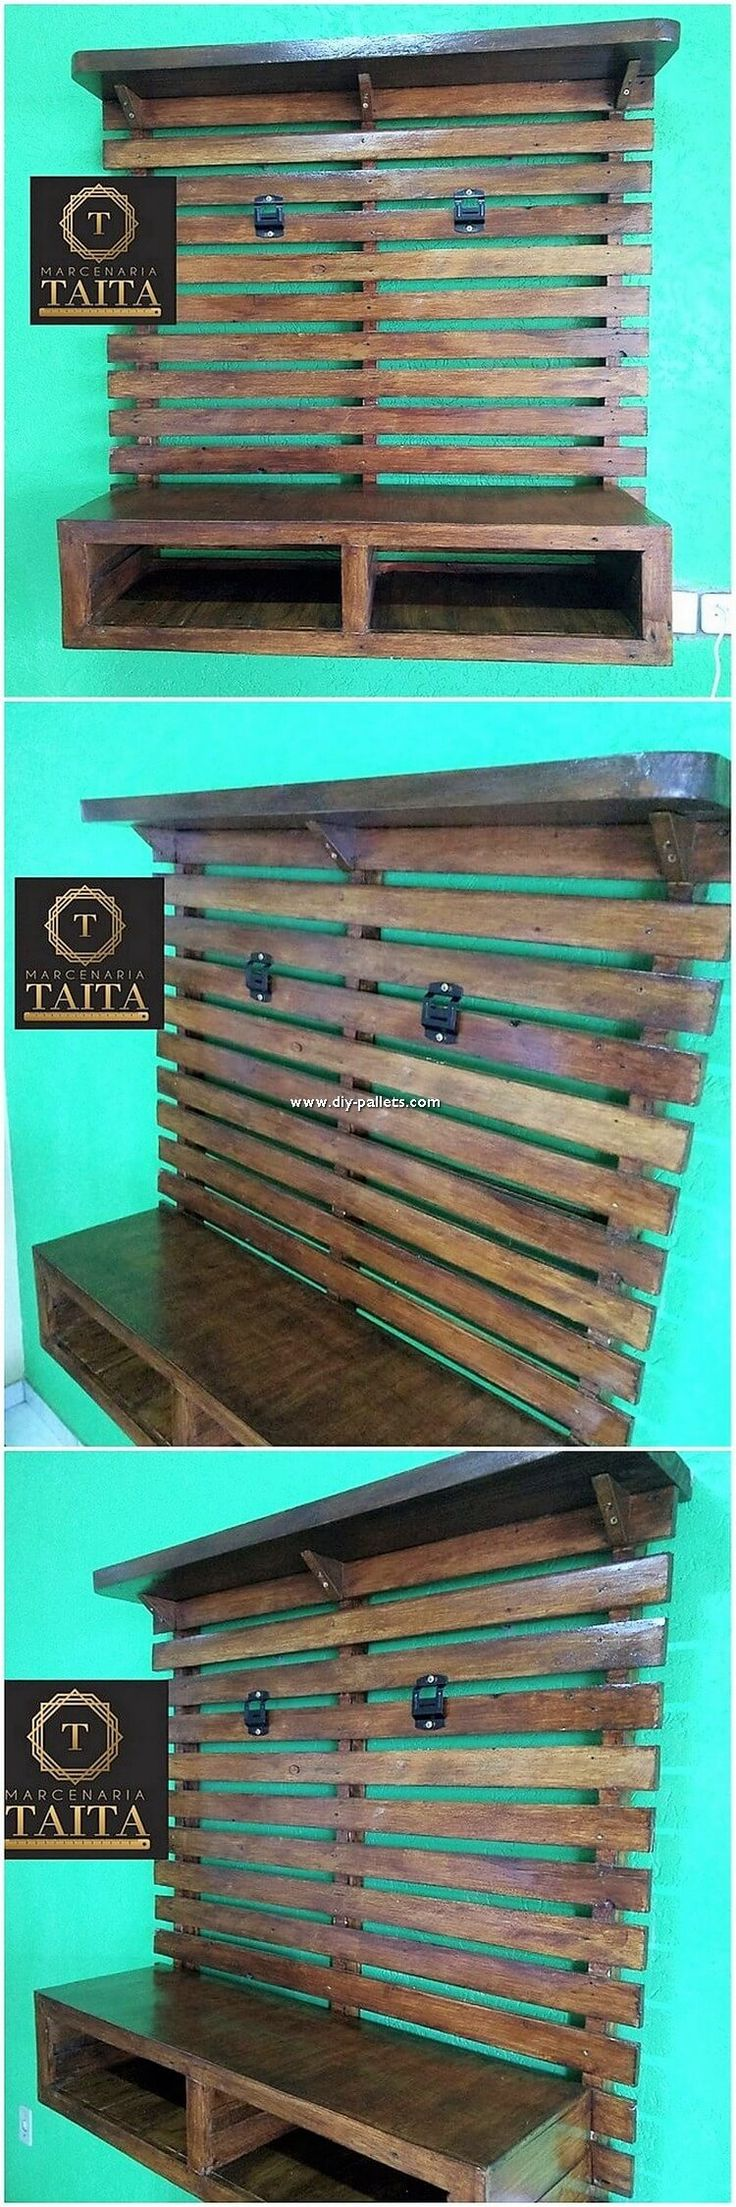 Latest DIY Wooden Pallet Ideas You Should Try